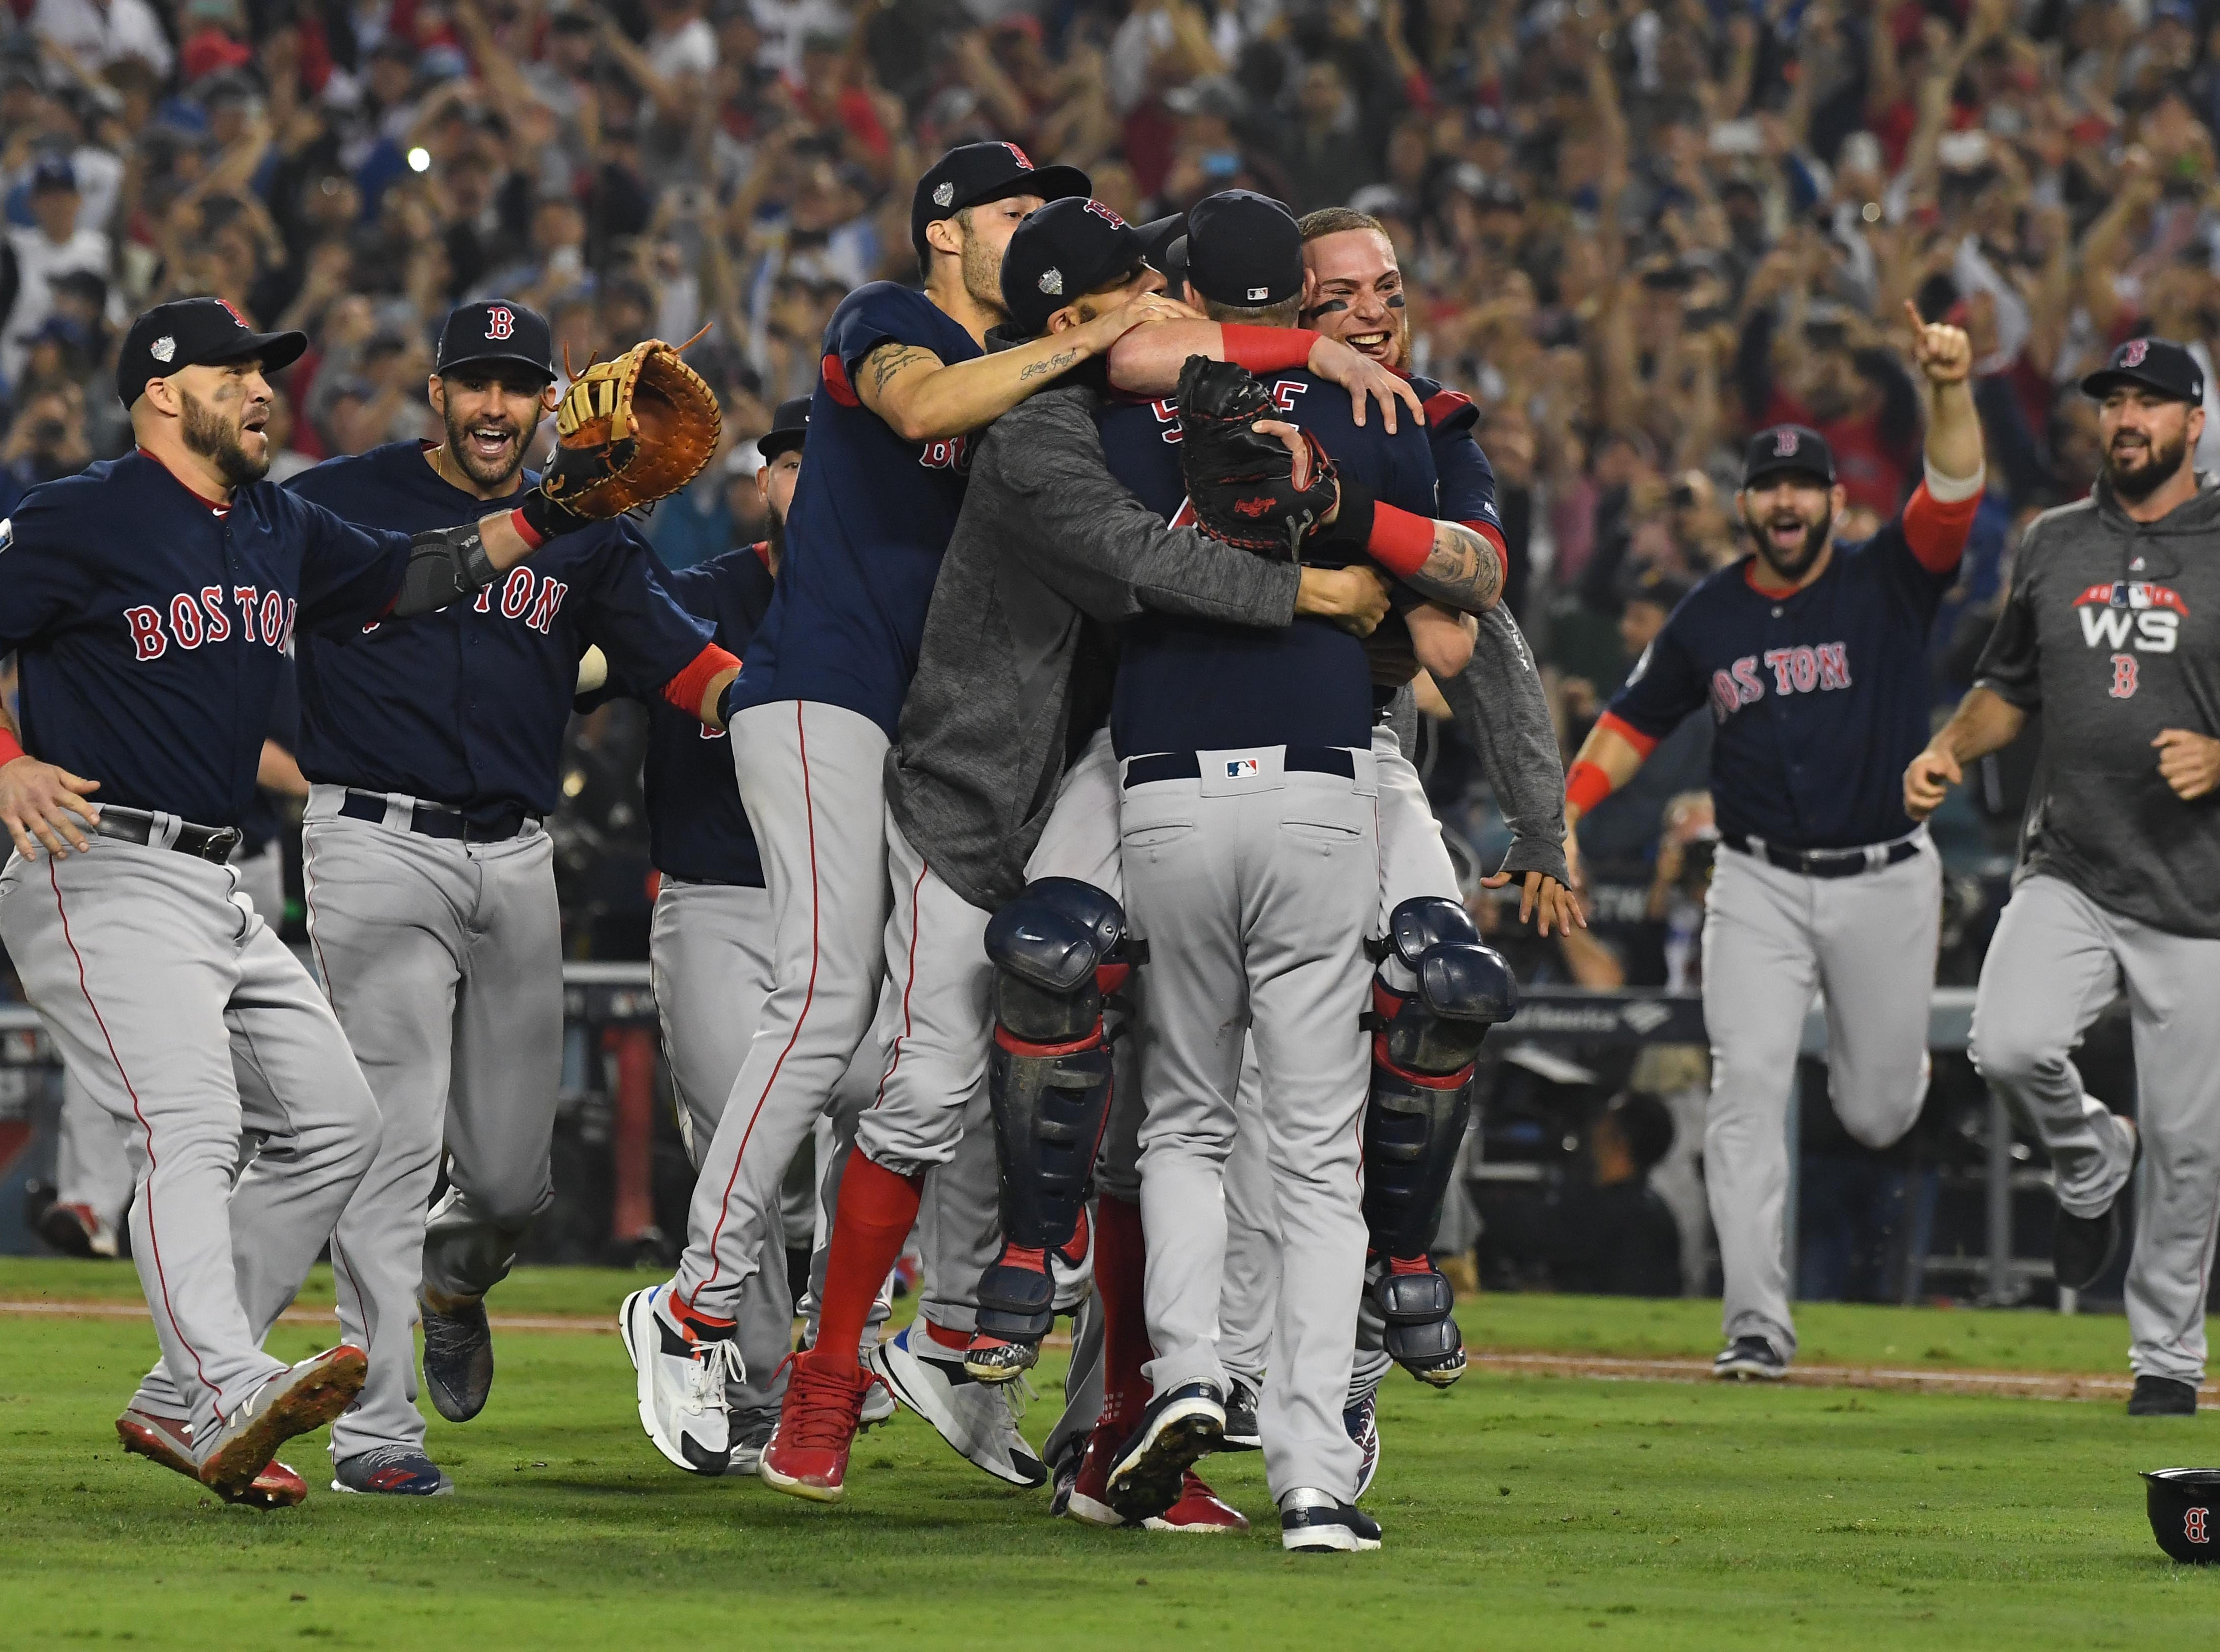 Game 5 at Dodger Stadium: Red Sox players celebrate their championship.